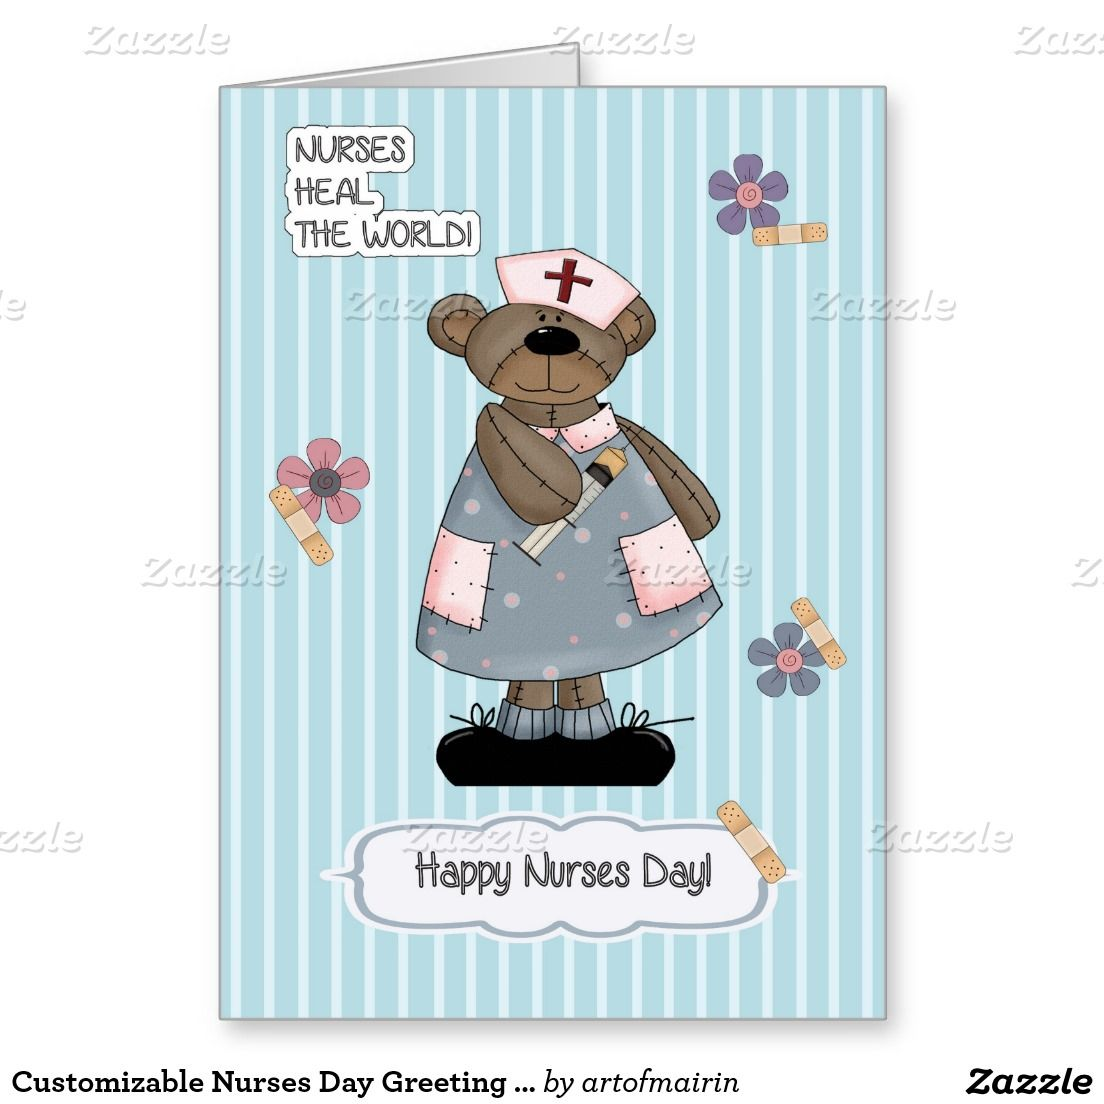 Customizable Nurses Day Greeting Card in 2020